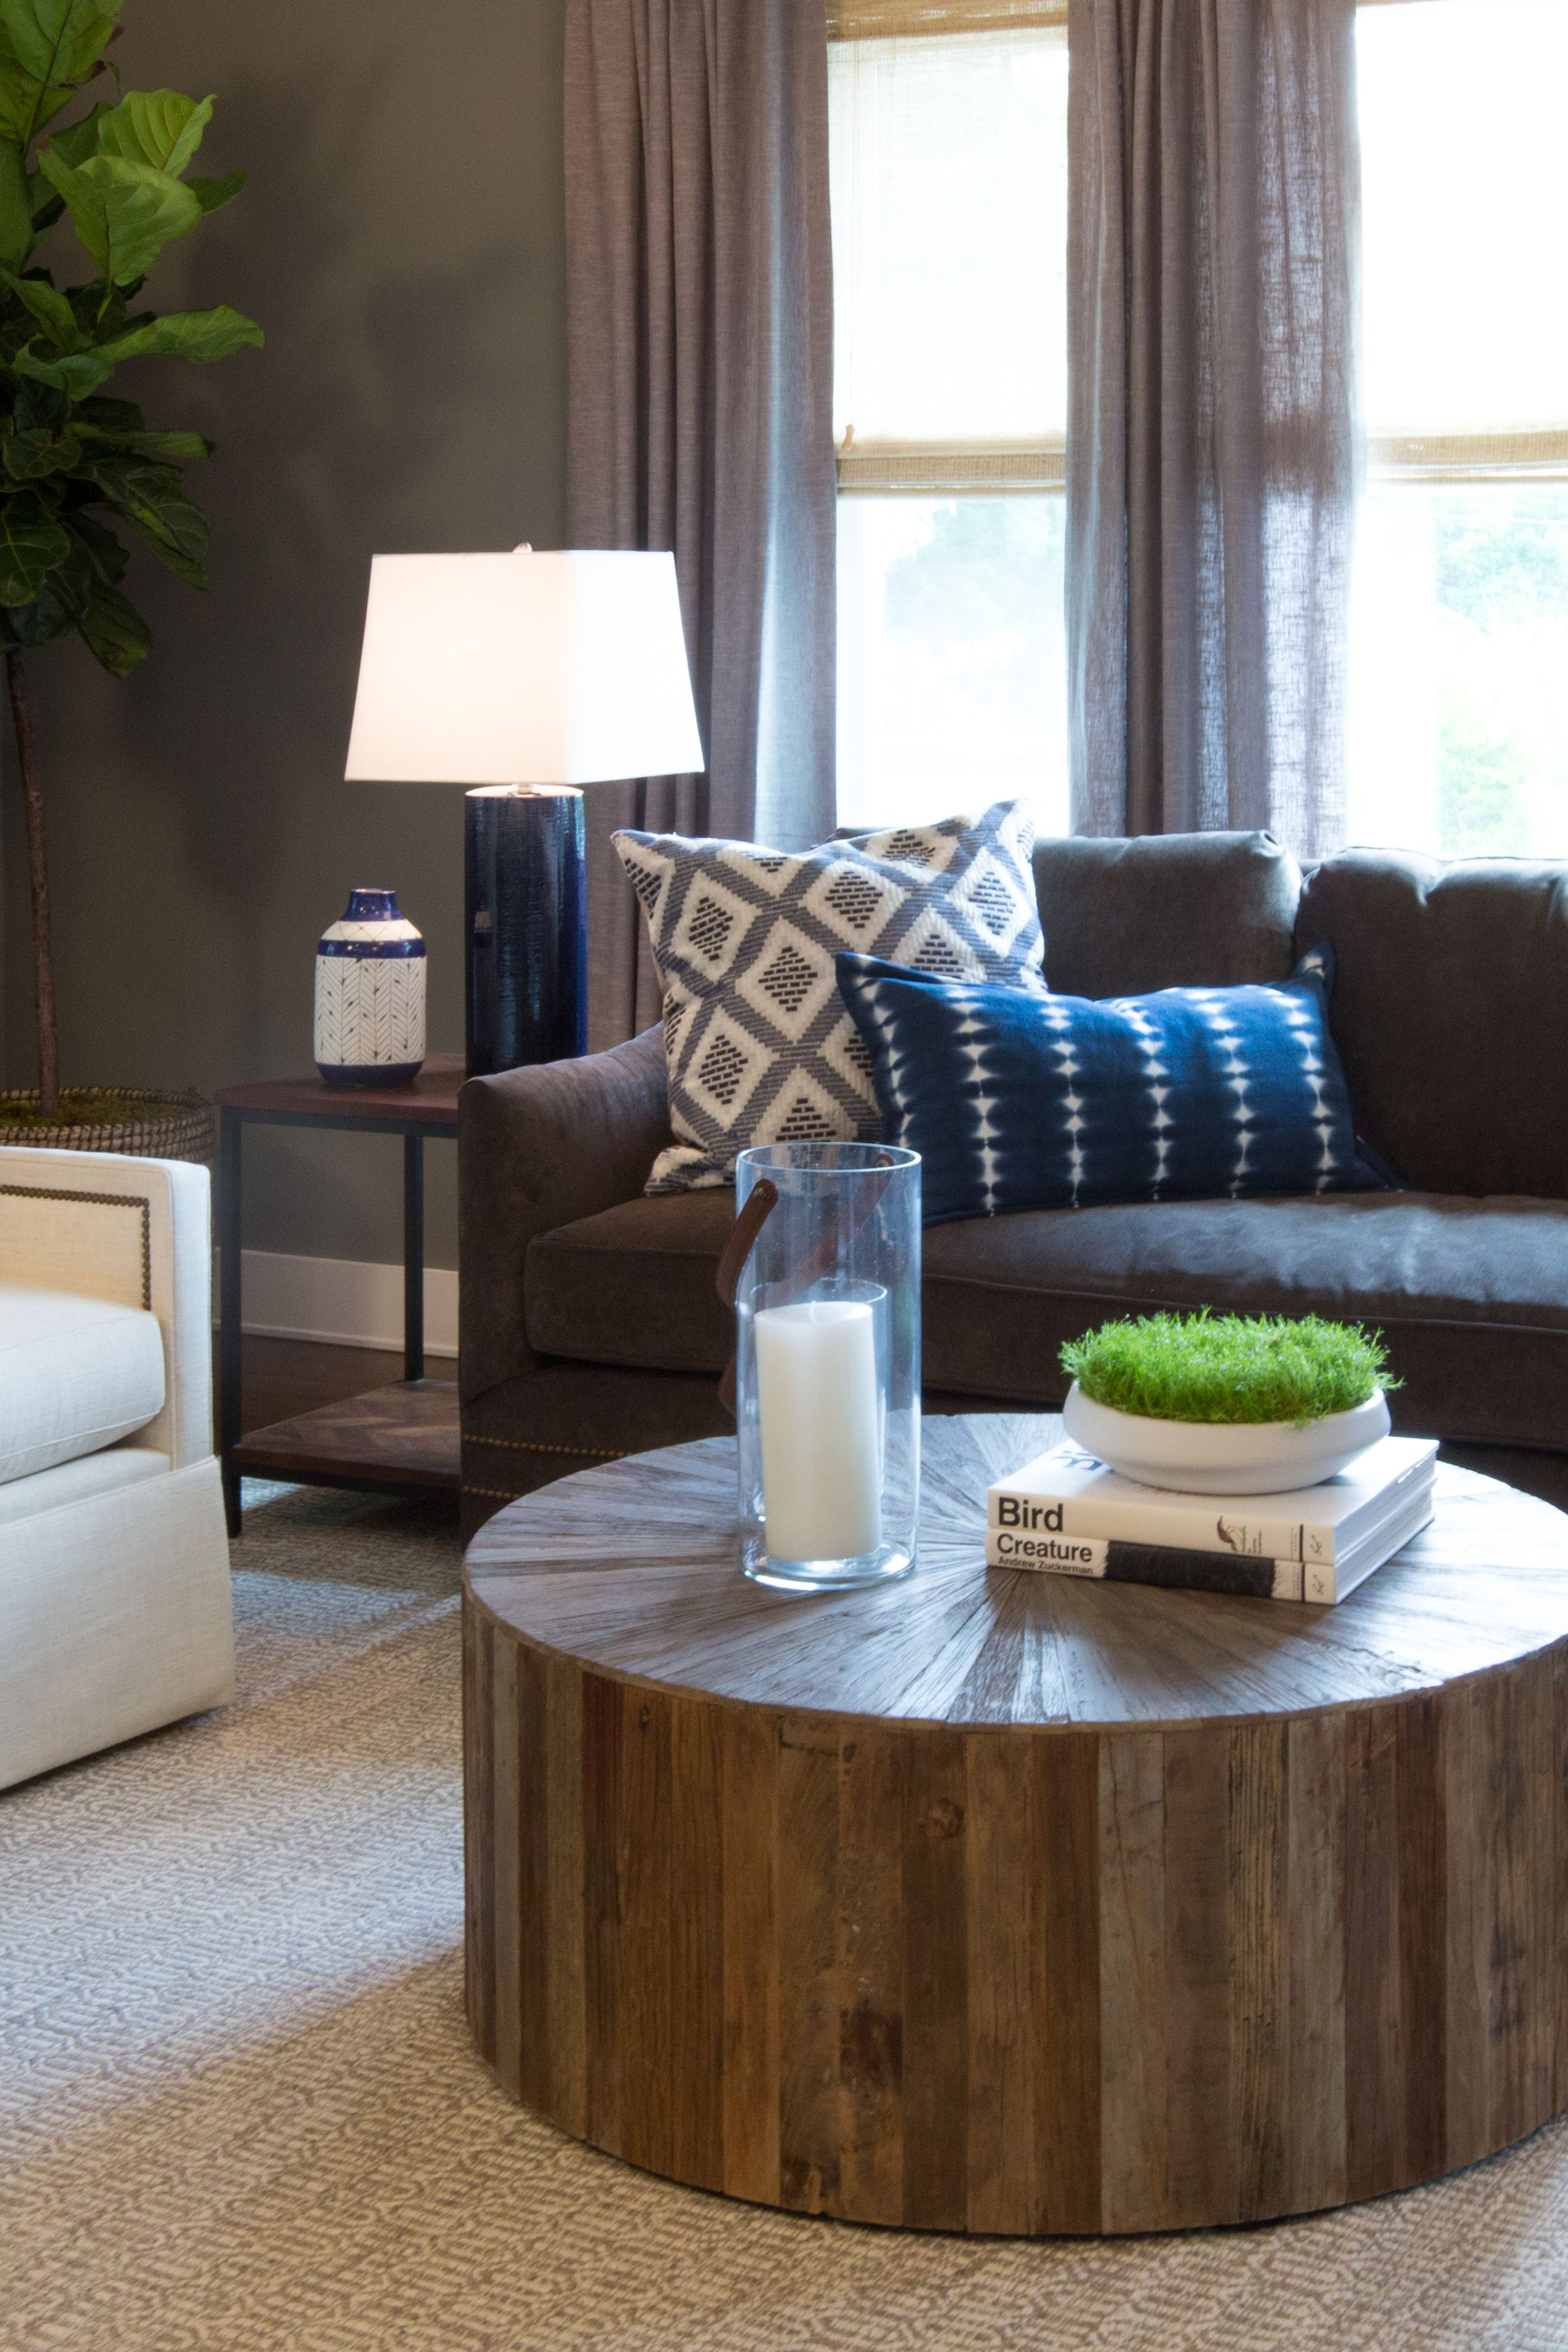 As Seen On Property Brothers: Bachelor Pad Gets a Spacious Look with Woven  Wood Shades